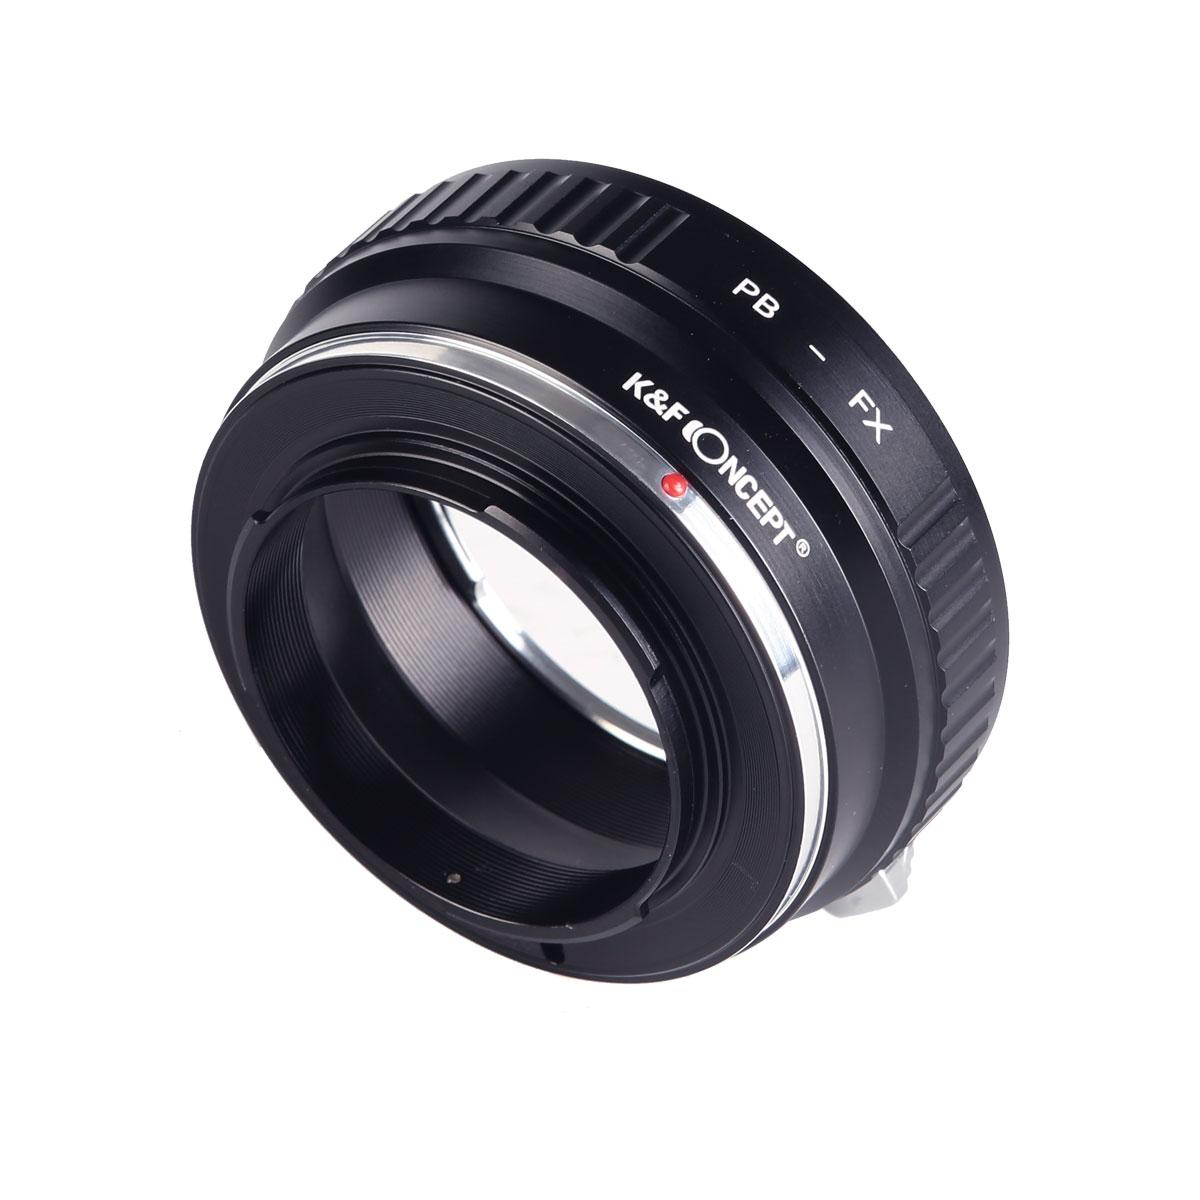 Praktica B Lenses to Fuji X Mount Camera Adapter